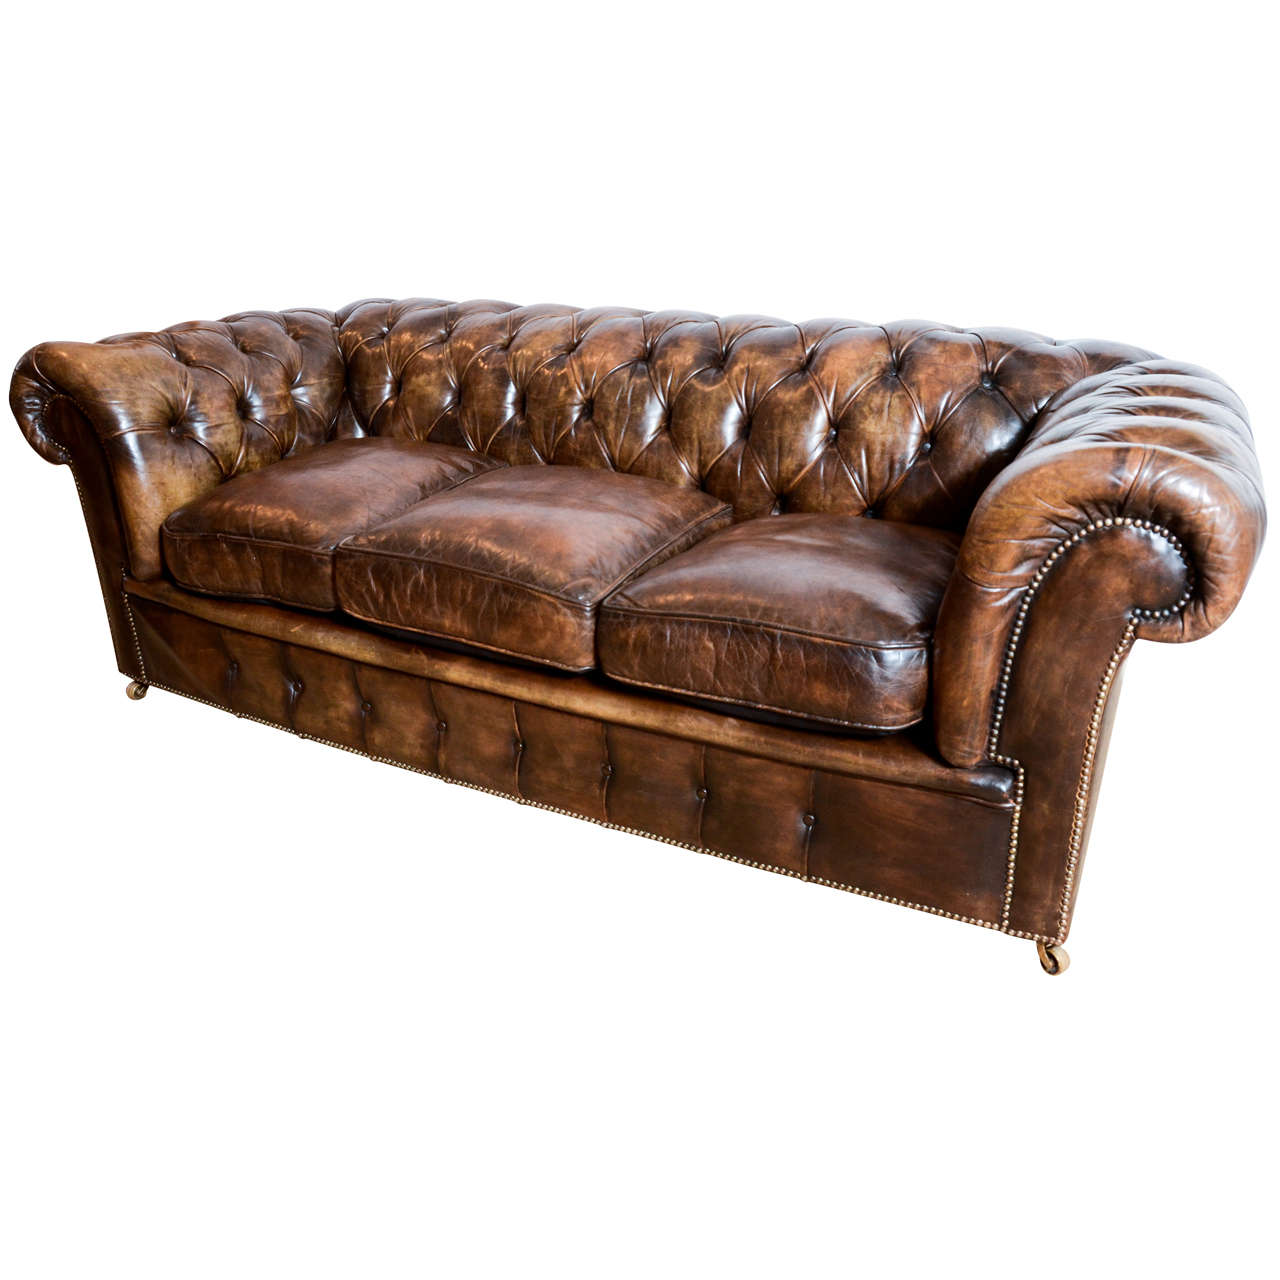 1920 S English Upholstered Leather Chesterfield Sofa For